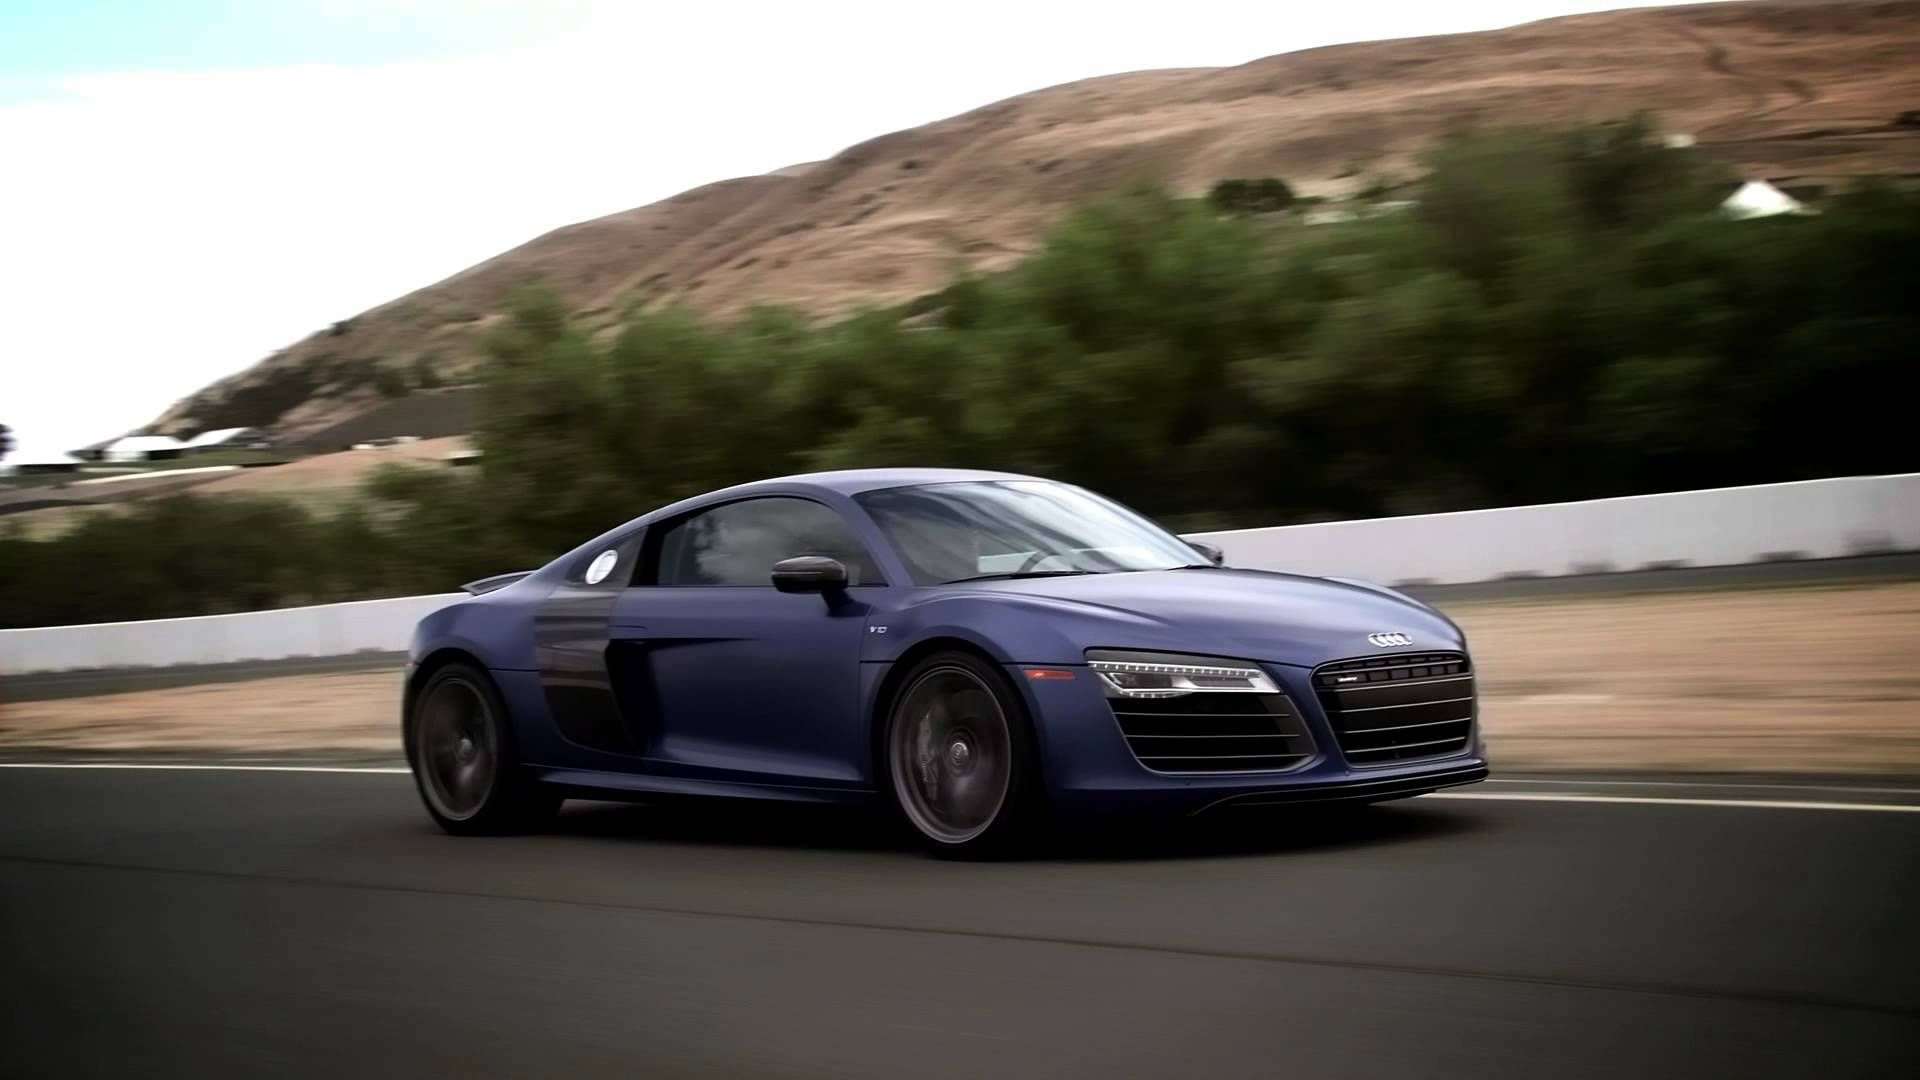 Audi R8 and RS5 at Sonoma raceway during the Audi sportscar